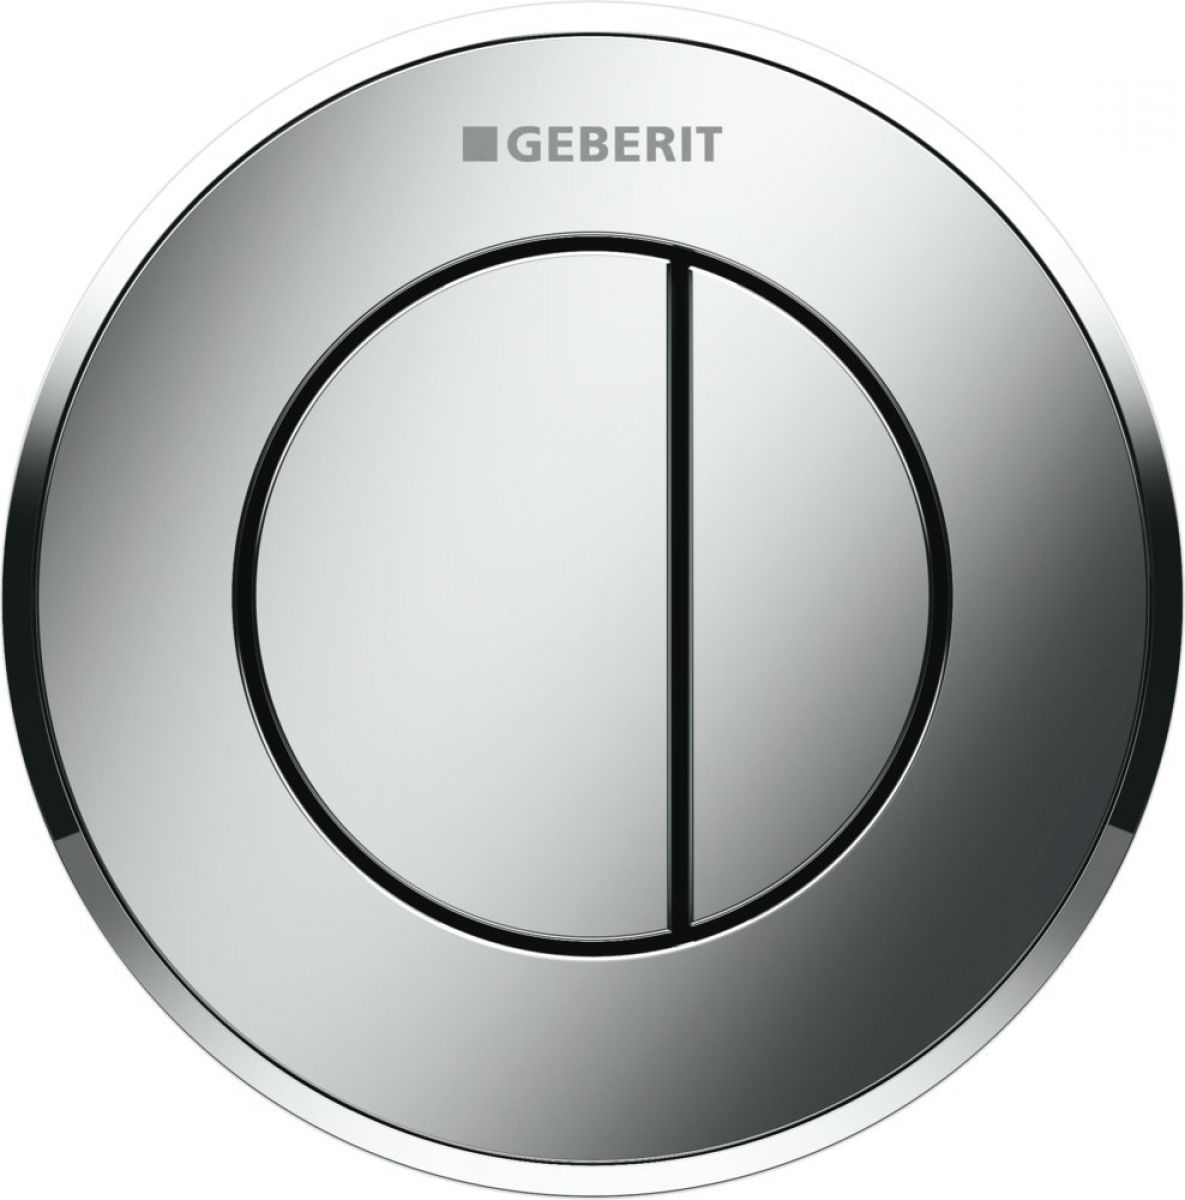 Geberit Dual Flush Button Pneumatic Type 10 Flush Types Of Buttons Toilet Cistern